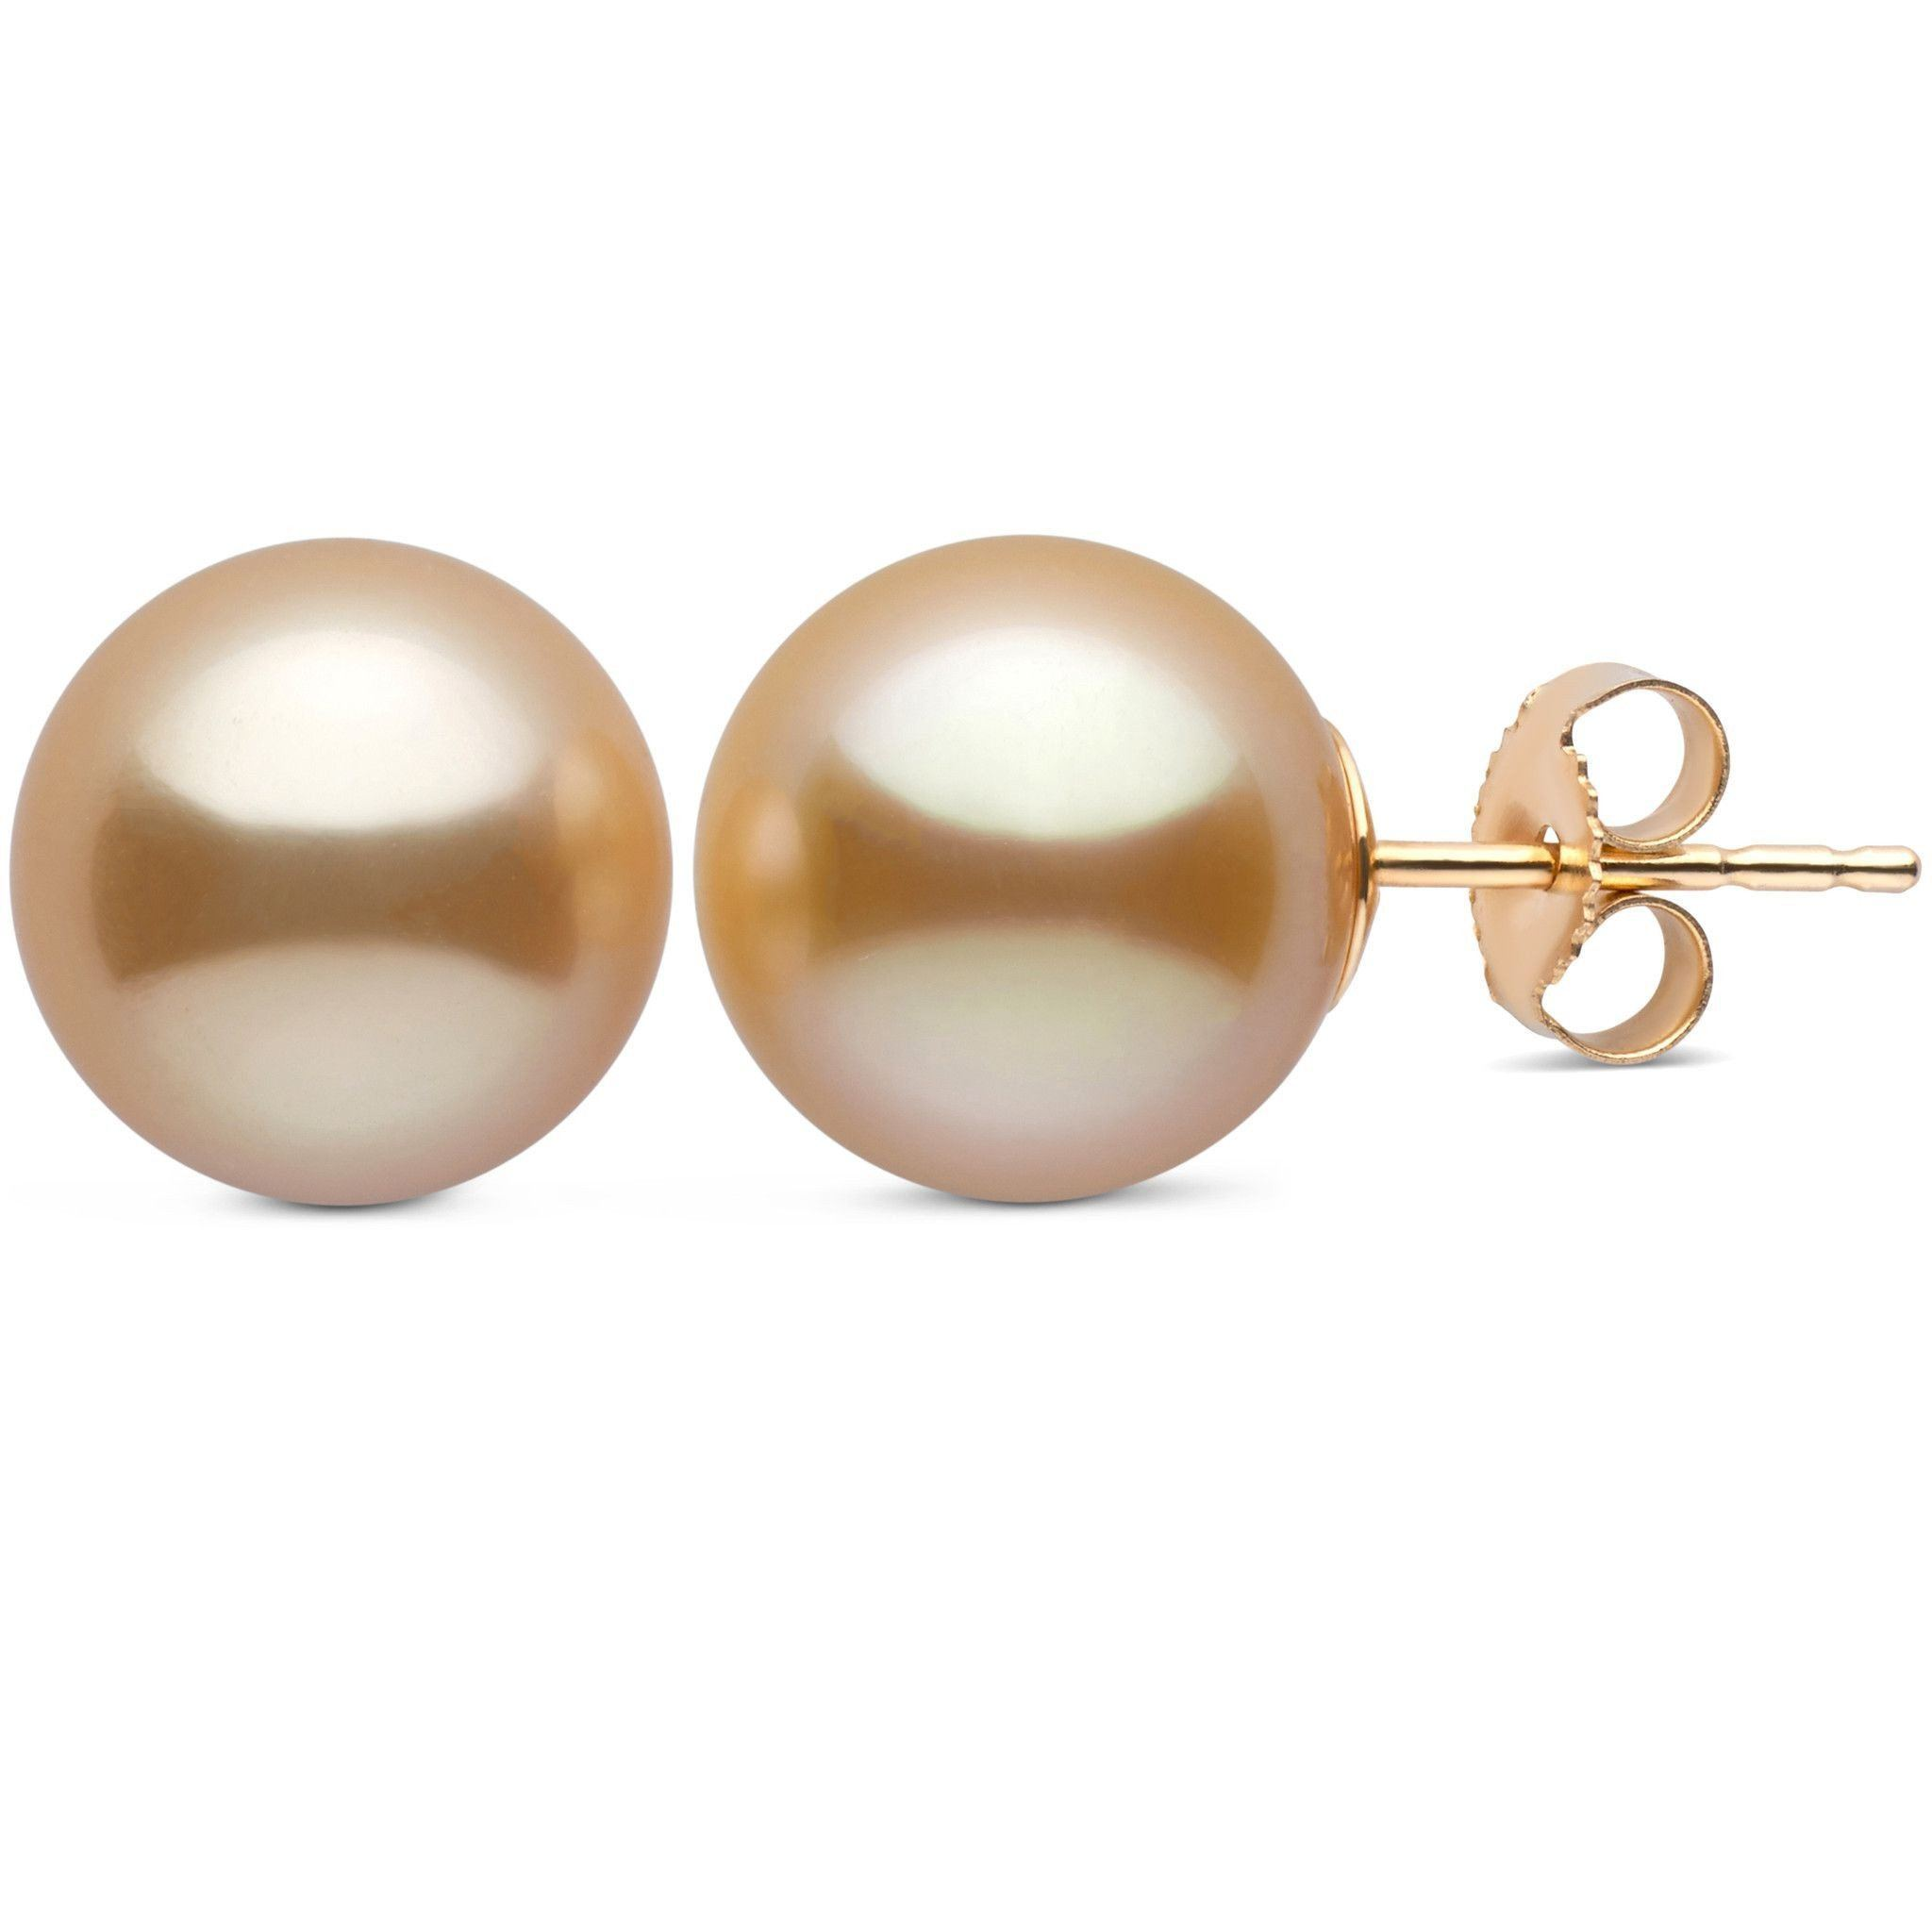 ted pearl earrings details baker at jewellery stud sinaa com